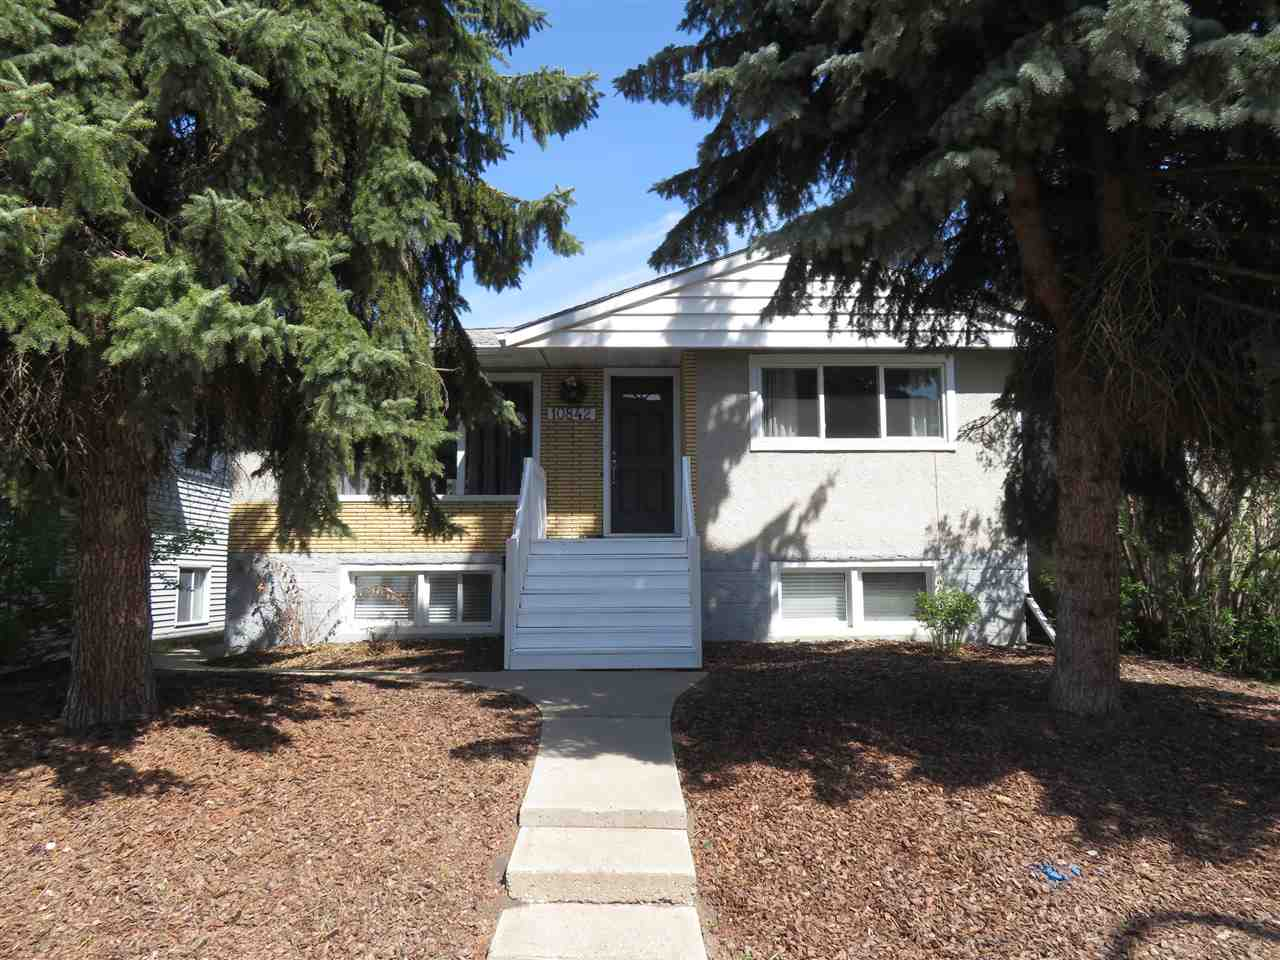 Main Photo: 10842 68 Avenue in Edmonton: Zone 15 House for sale : MLS®# E4110846